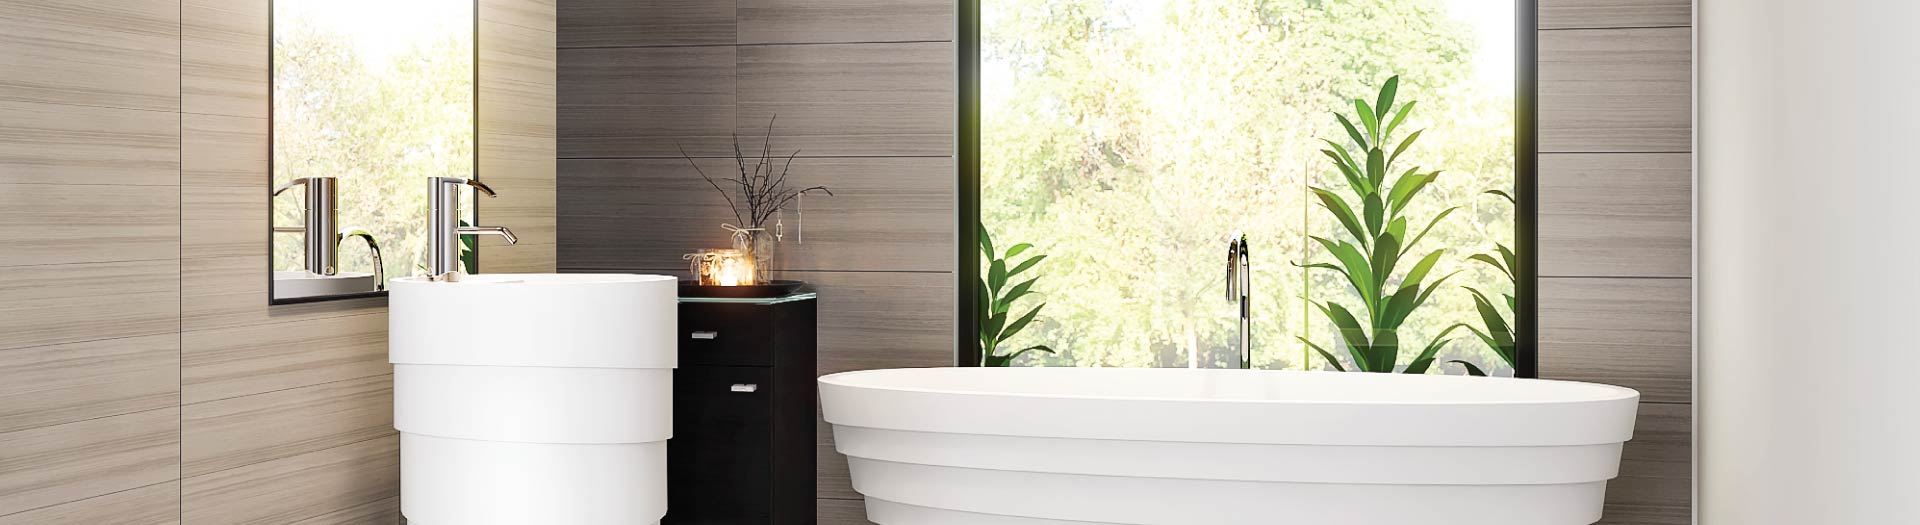 We are a leading ceramic and porcelain tiles distributor a new generation dailygadgetfo Image collections